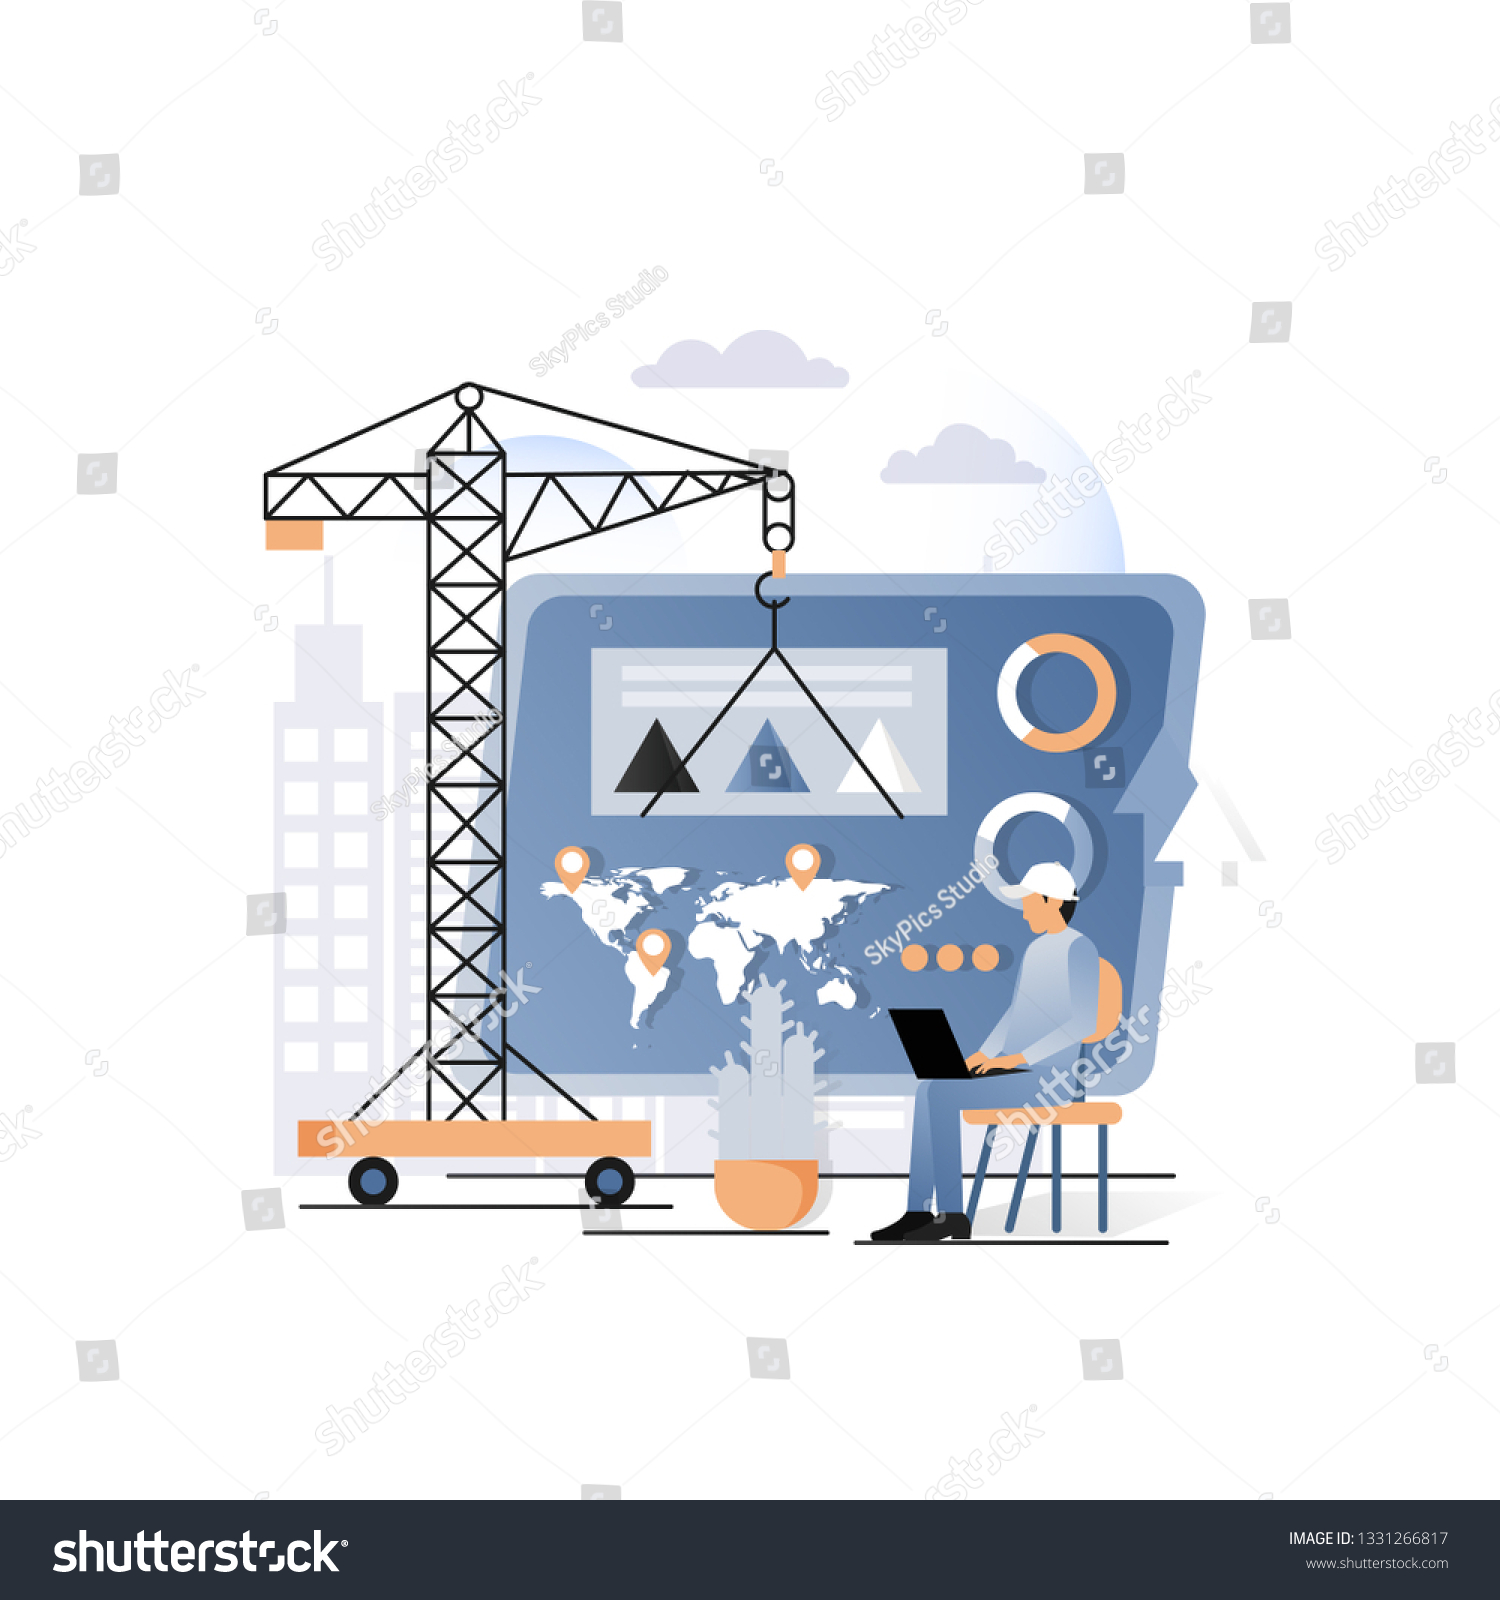 hight resolution of vector illustration of construction crane building business activity diagram on dashboard business building data